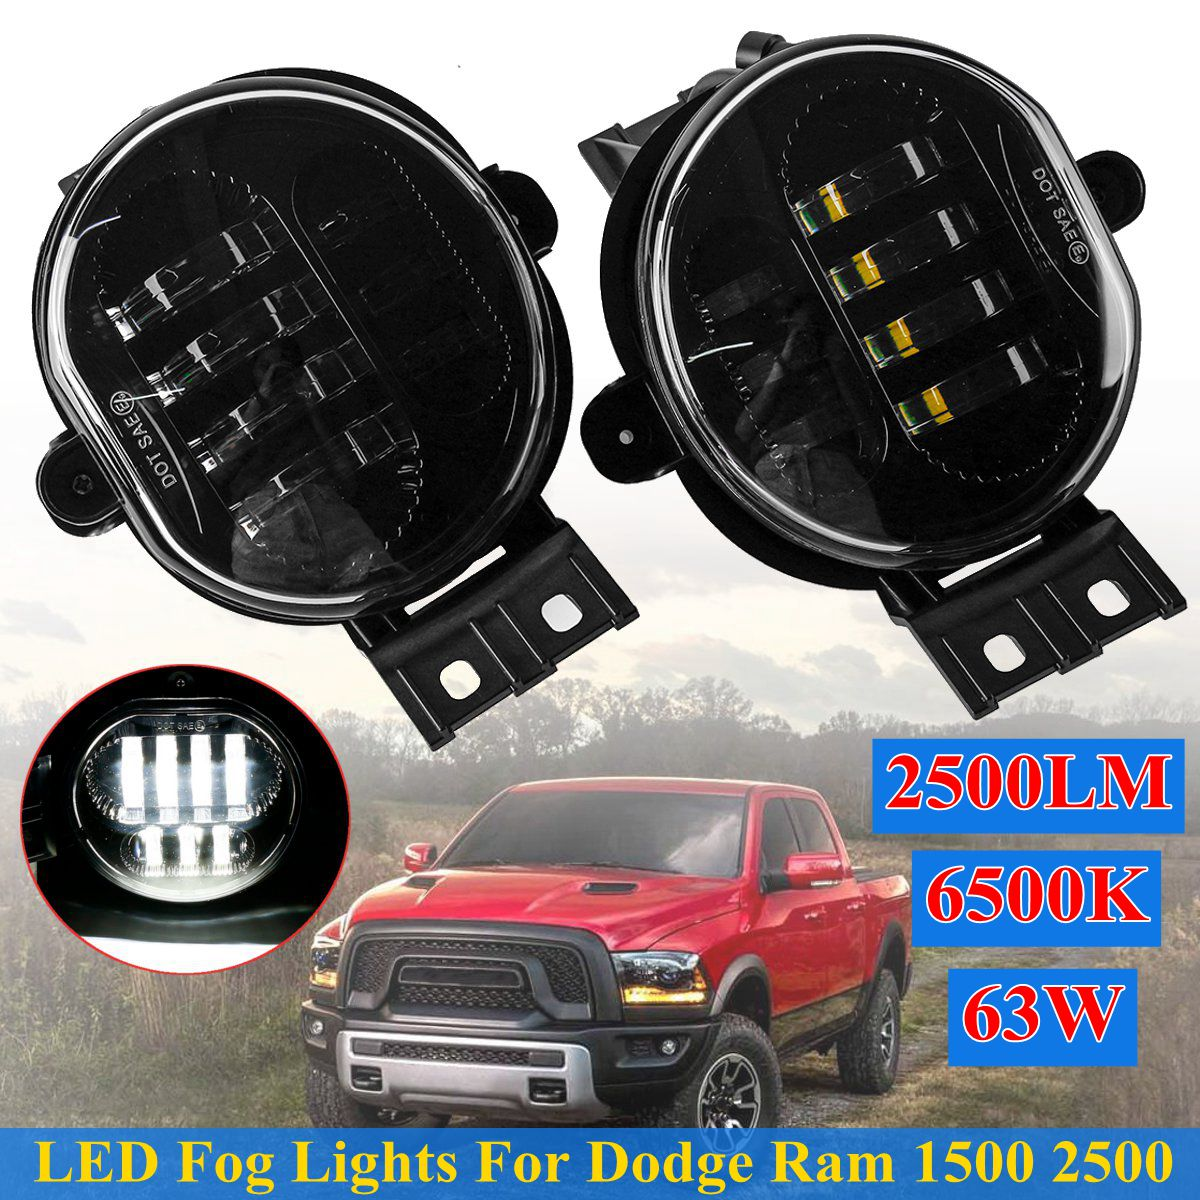 Pair Front LED Car Front Bumper Fog Light Lamp Car Styling For Dodge Ram 1500 2002-2008 2500/3500 2003-2009 Durango 2004-2006Pair Front LED Car Front Bumper Fog Light Lamp Car Styling For Dodge Ram 1500 2002-2008 2500/3500 2003-2009 Durango 2004-2006